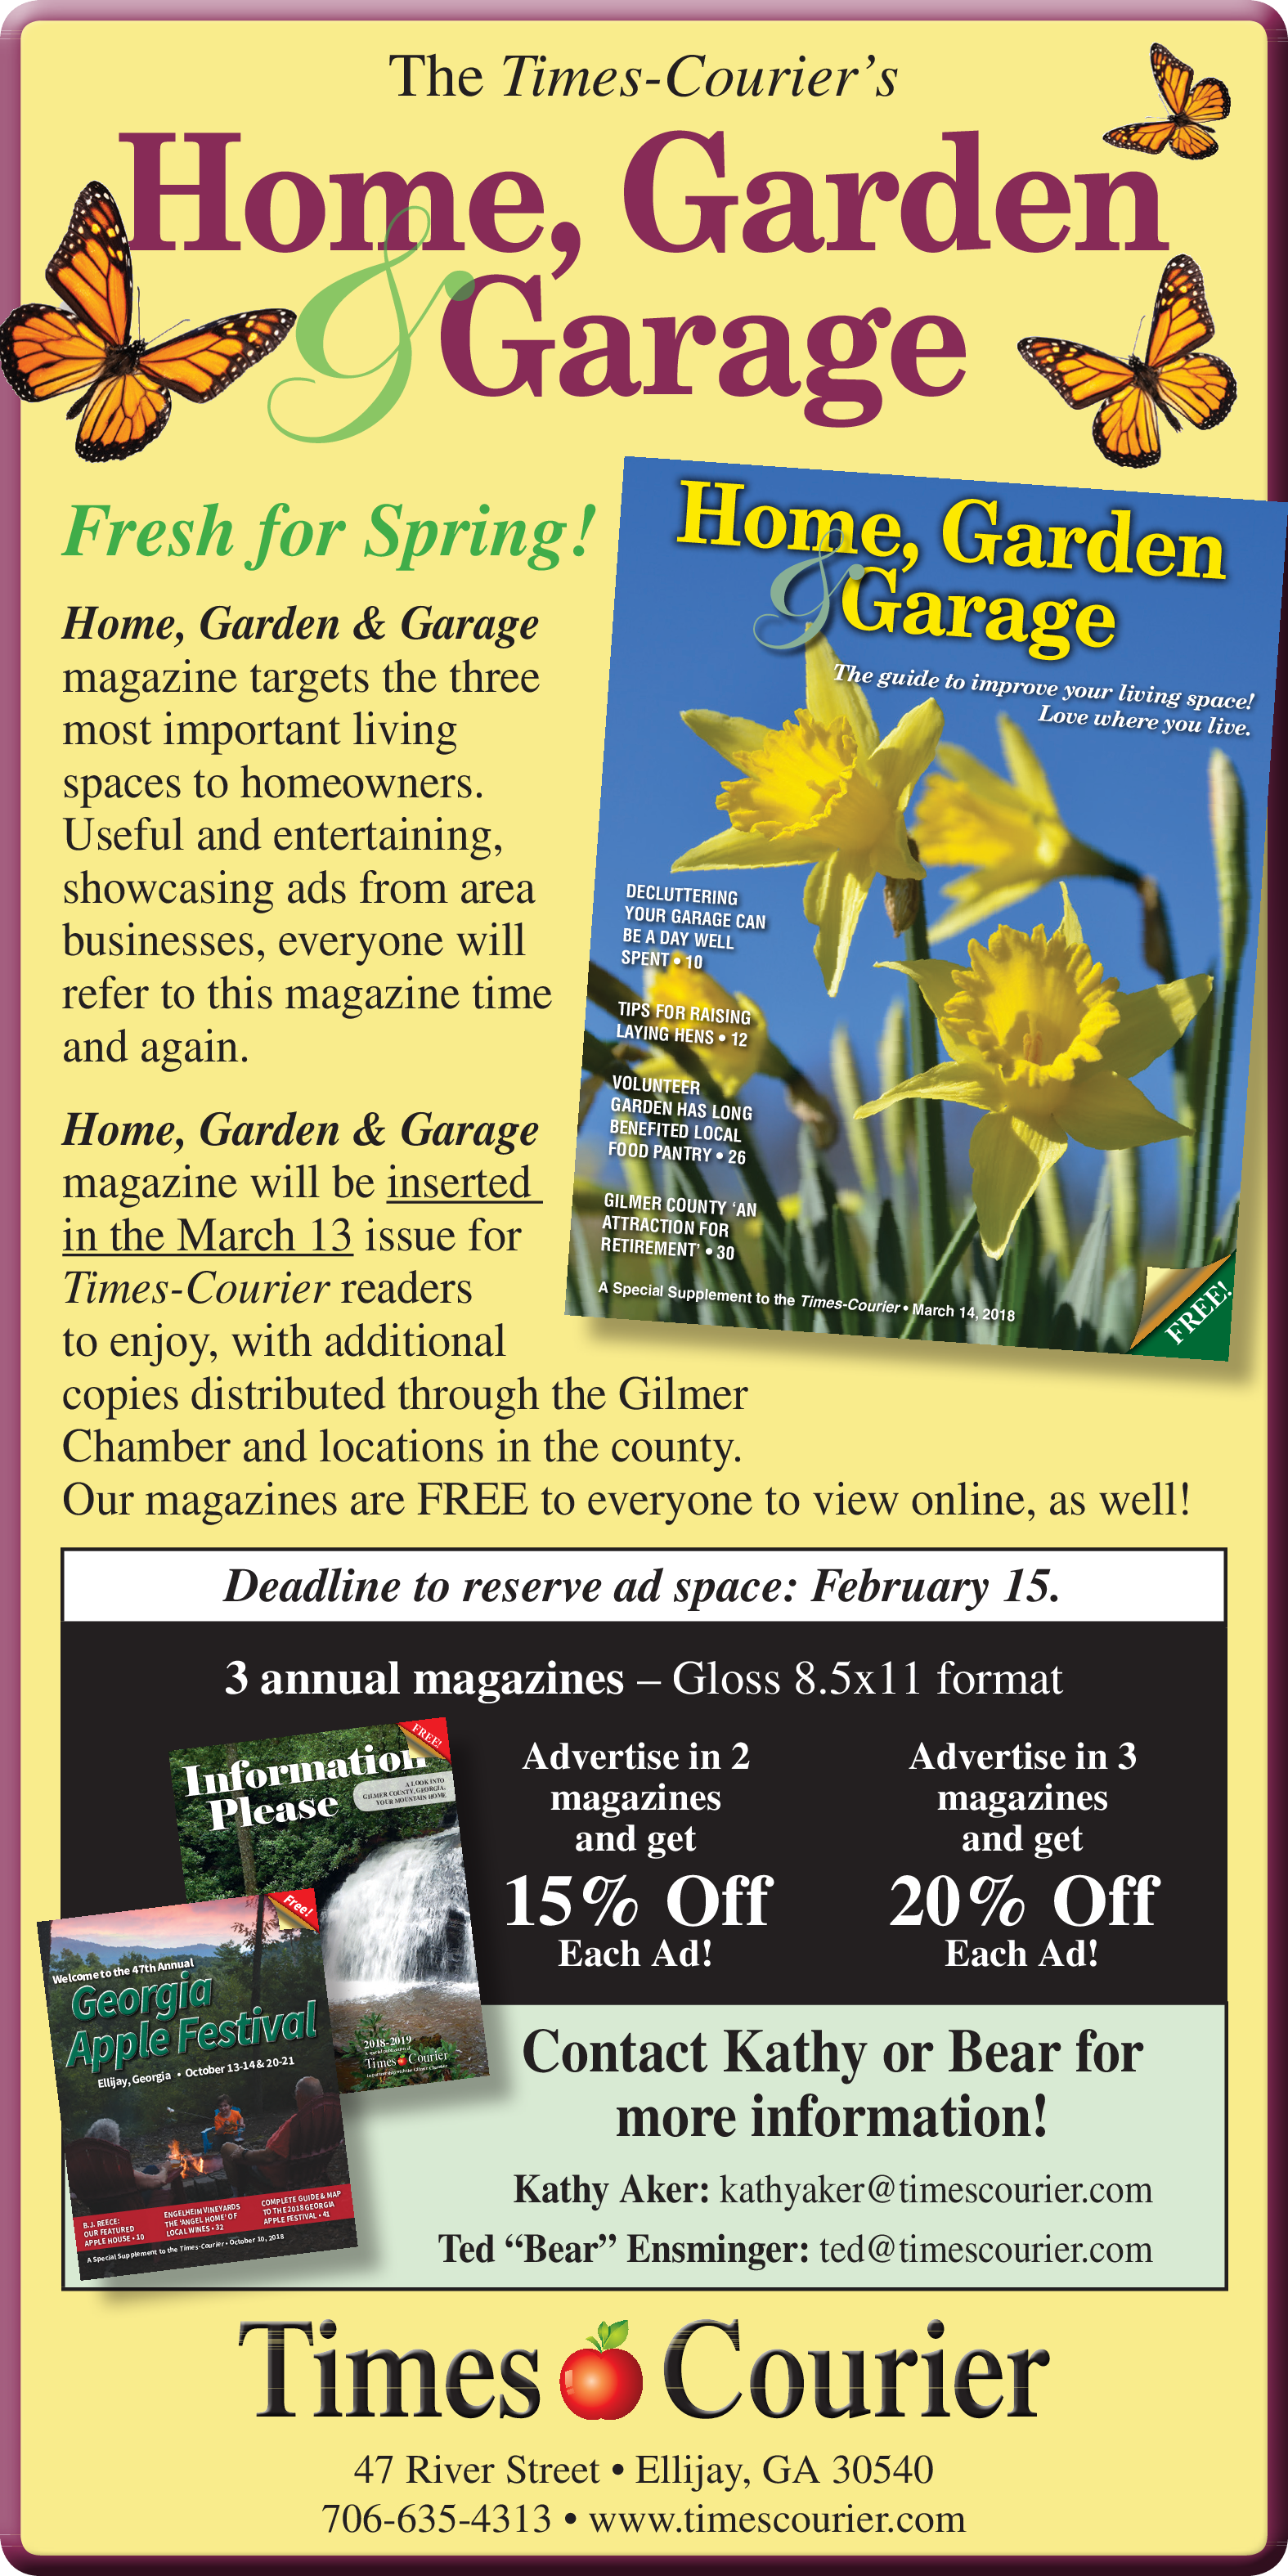 Online Free Magazine in Ellijay, GA, Newspapers - Times-Courier